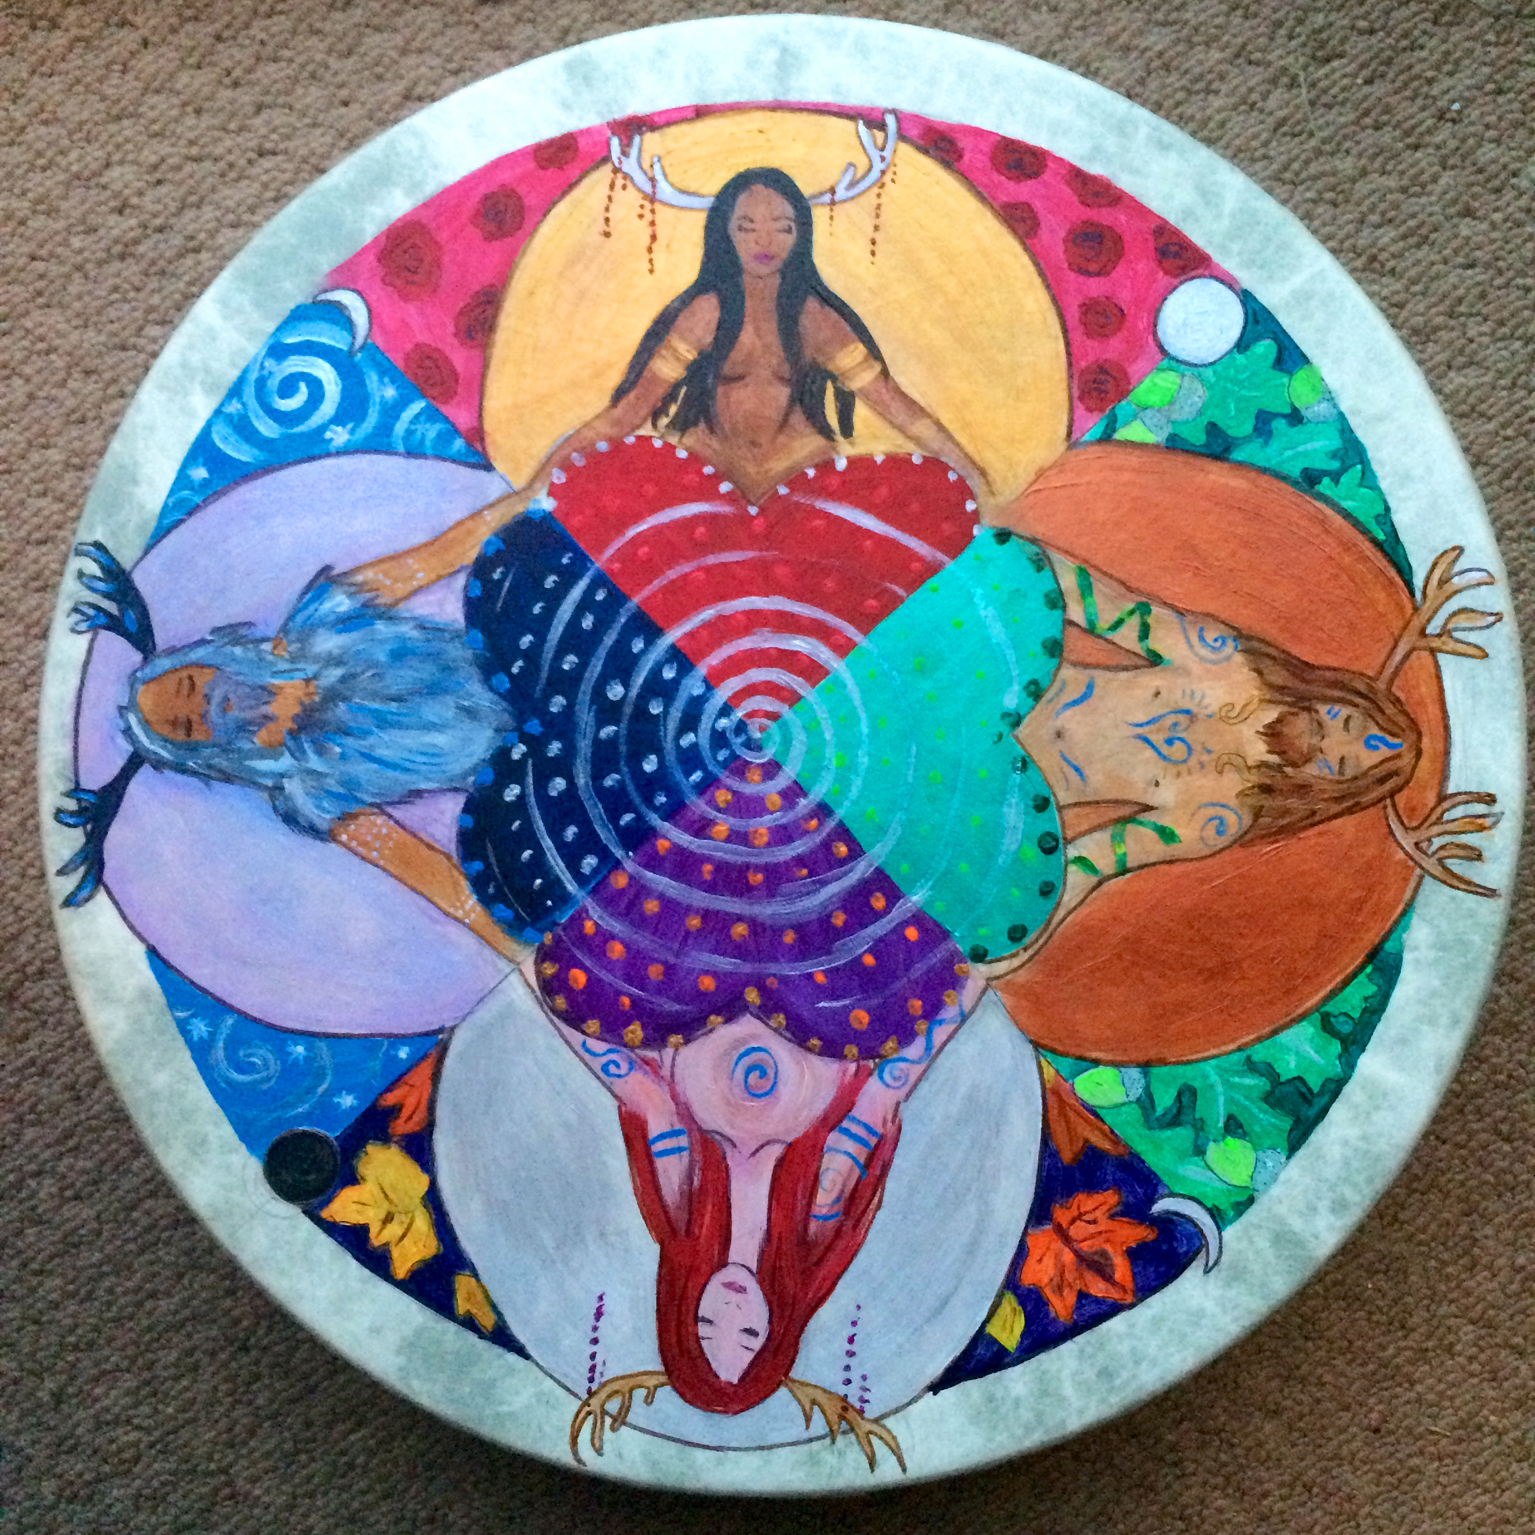 Antlered Goddess & God Drum